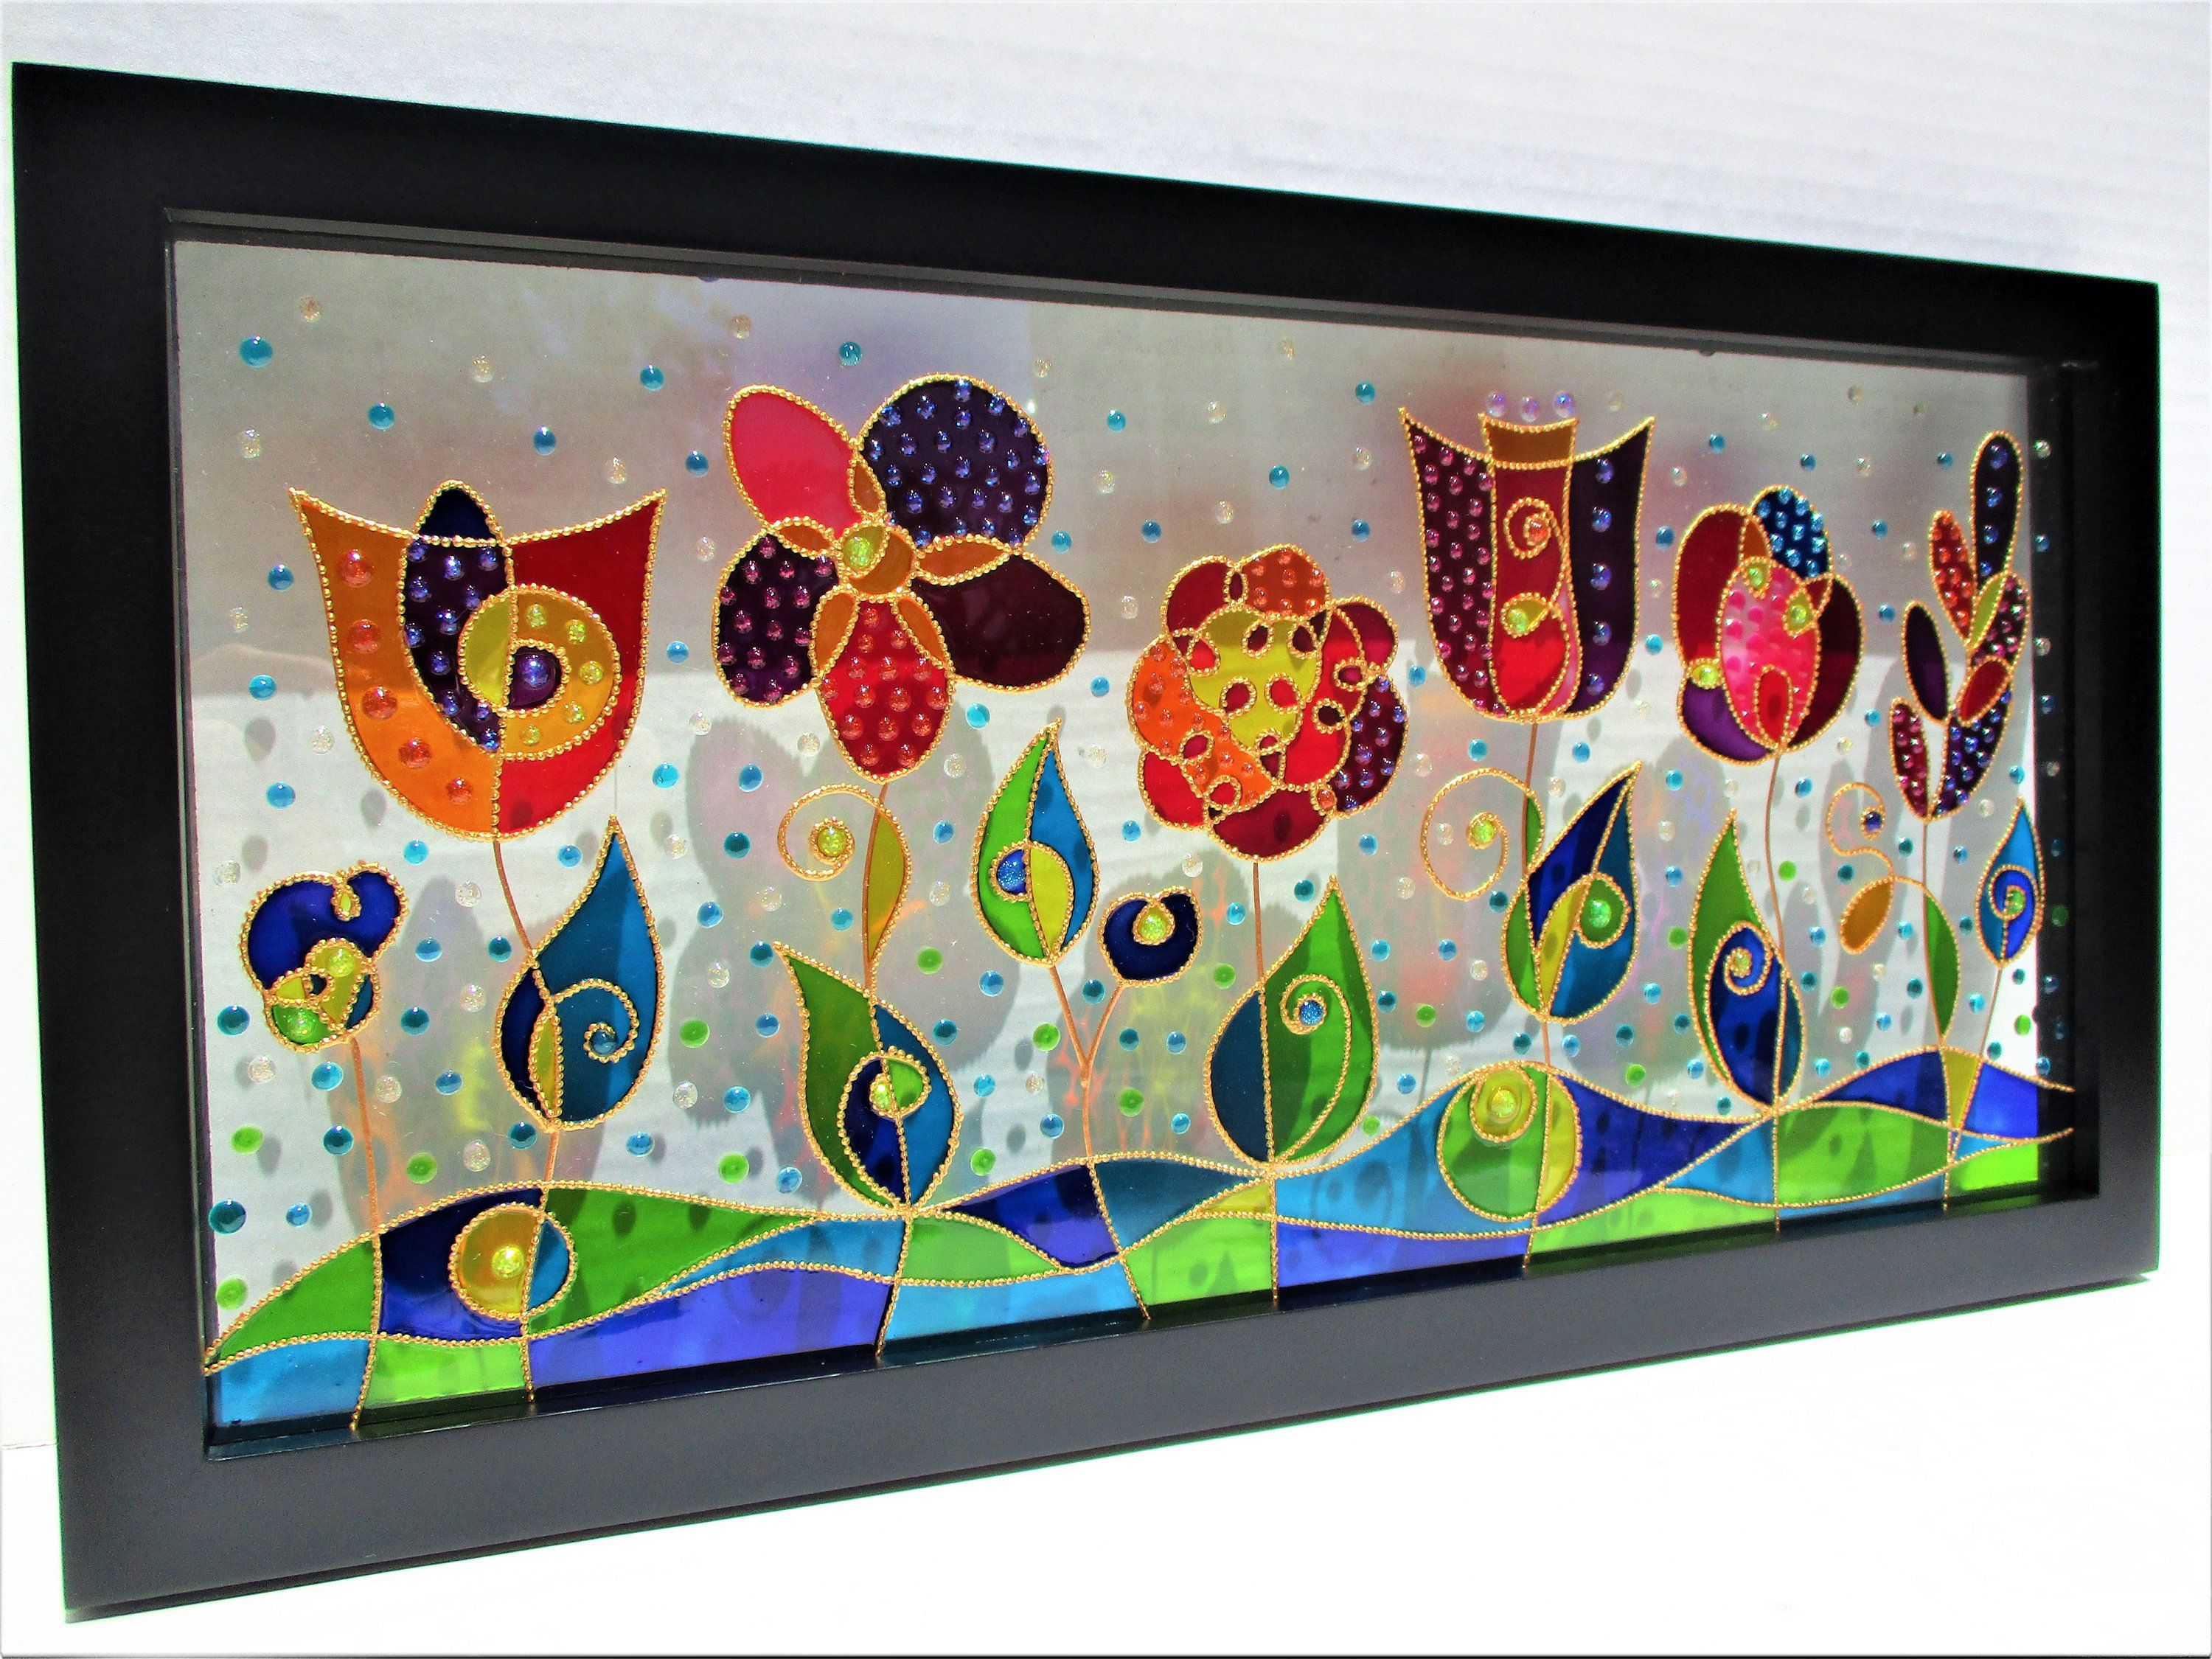 Abstract Flower Art Landscape Art Glass Painting Stained Glass Glass Art Wall Art Window Decor Original A Abstract Flower Art Glass Painting Kit Glass Painting